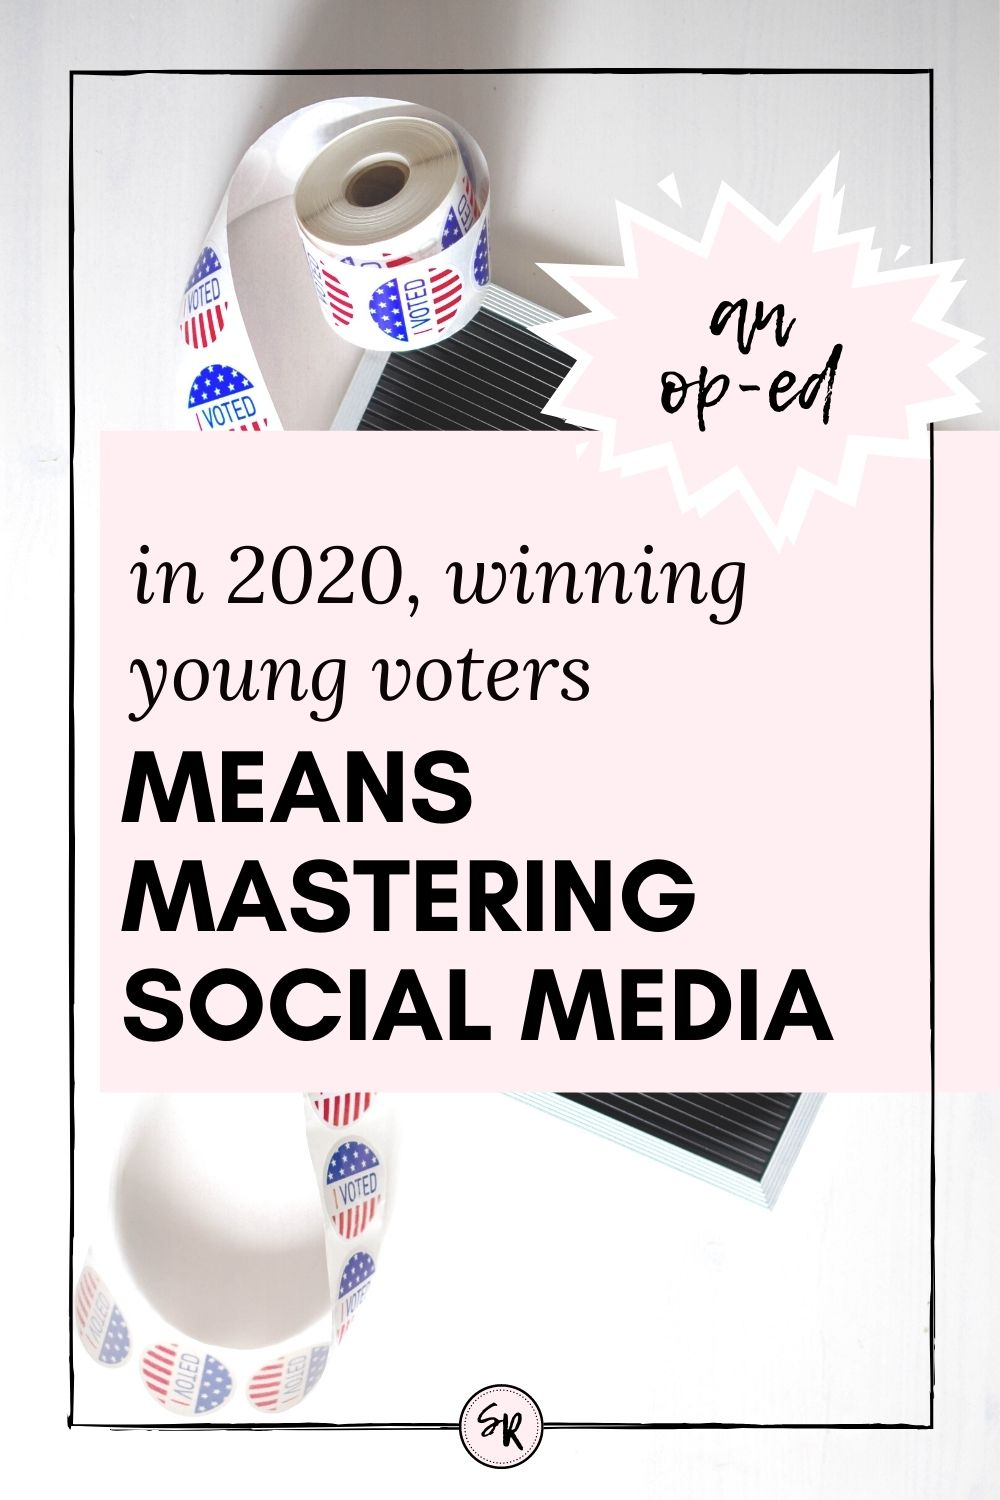 In 2020, Winning Over Young Voters Means Mastering Social Media